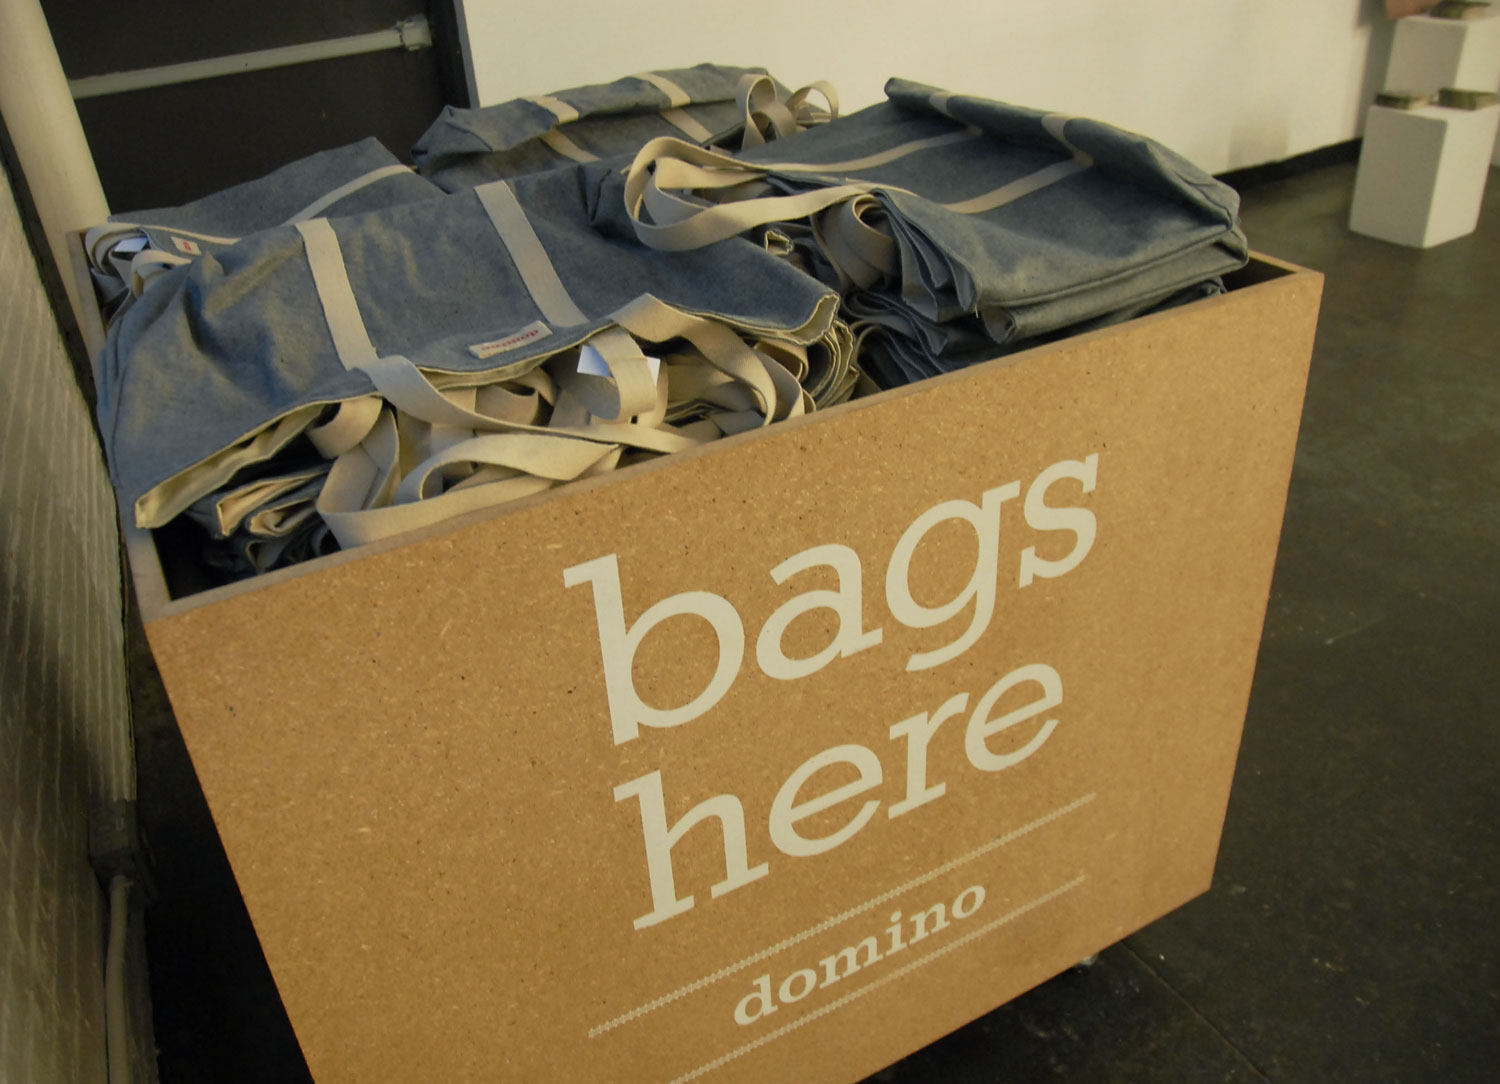 THE CUSTOM DESIGNED SHOPPING BAGS